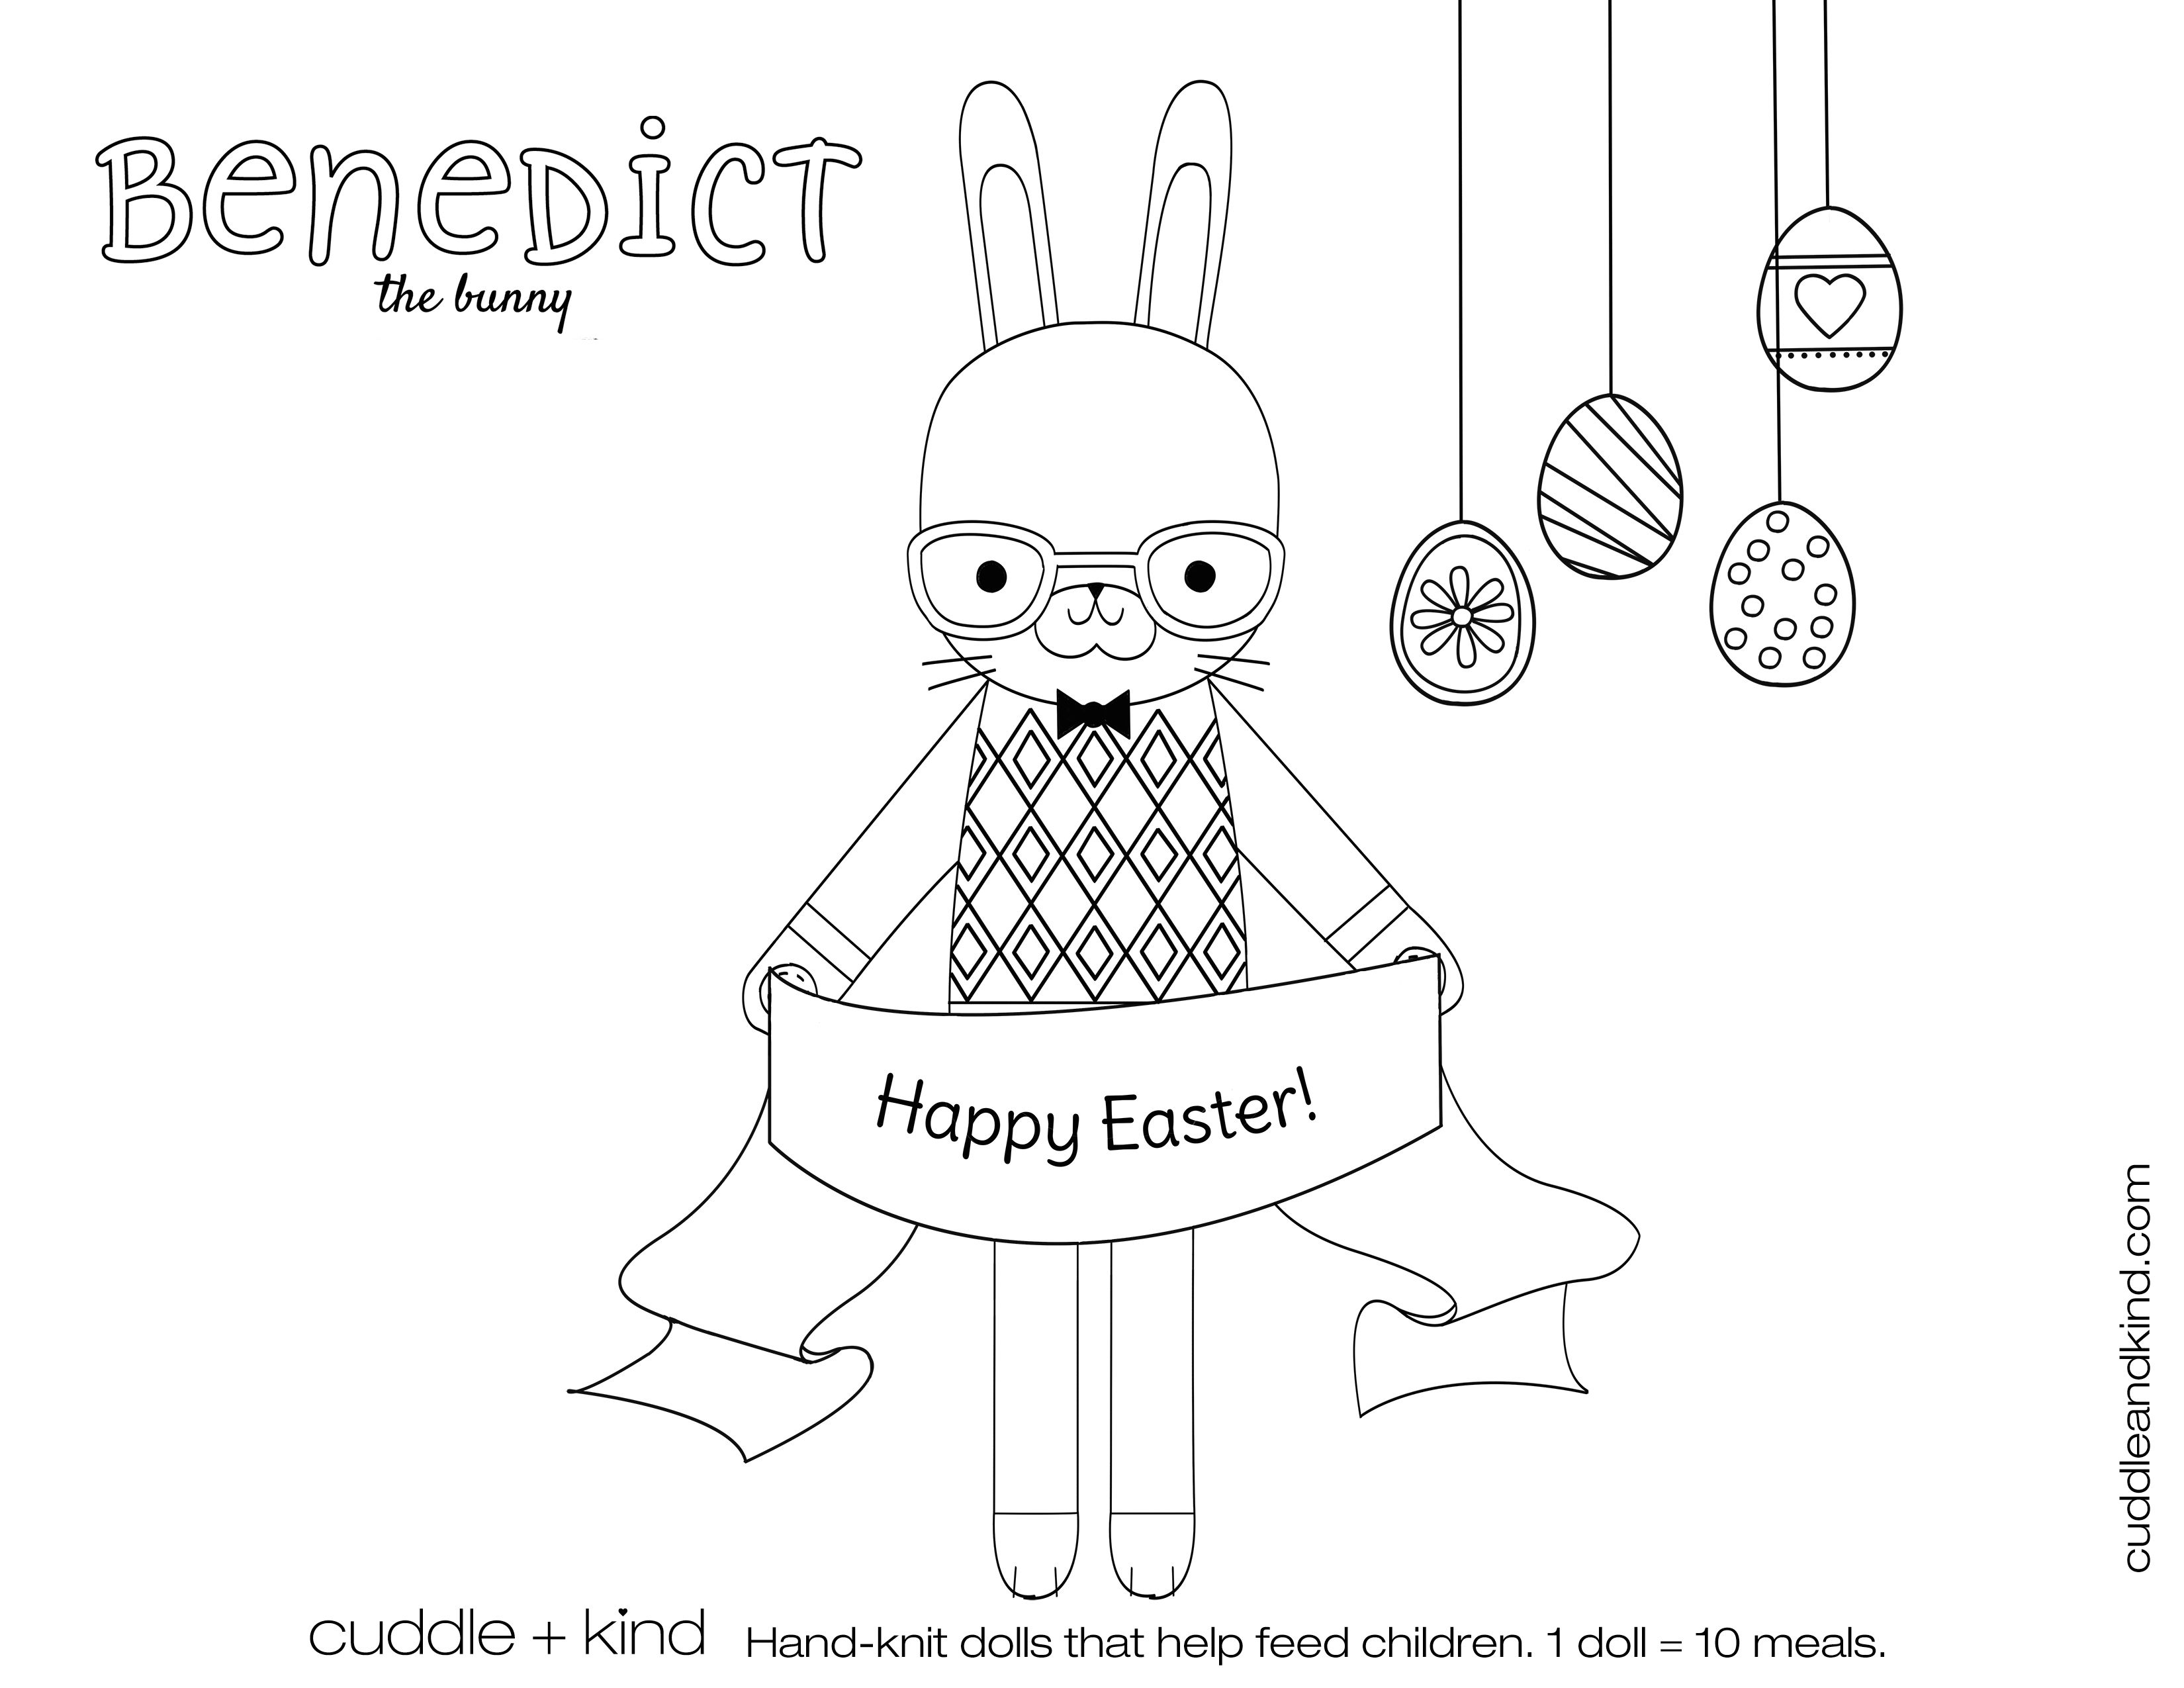 cuddle+kind benedict the bunny colouring sheet. www.cuddleandkind ...